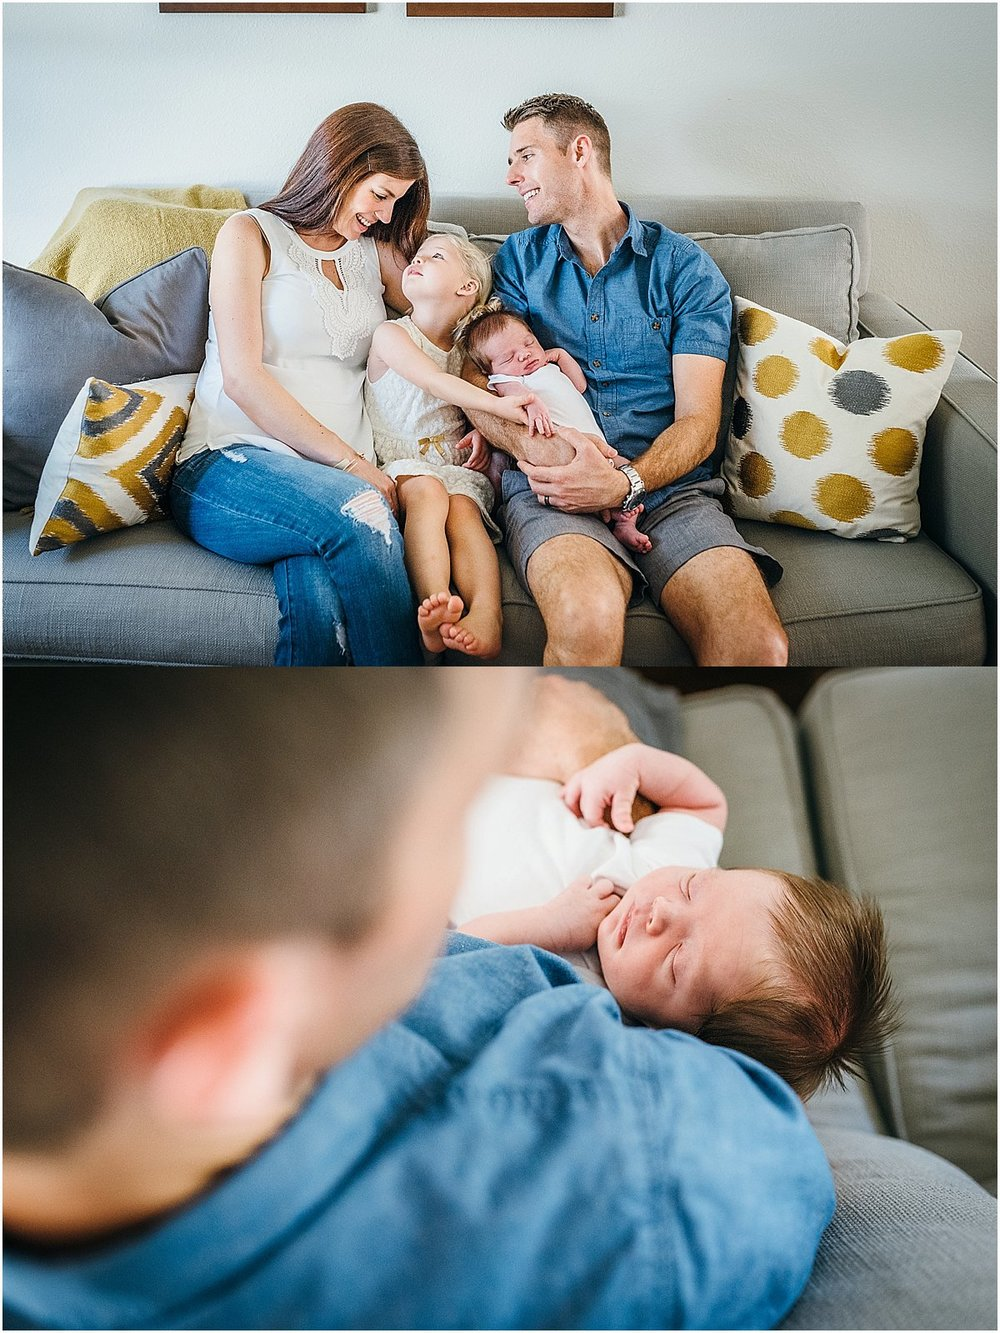 Ashley_Rogers_Photography_Orlando_Non-Posed_Newborn_Family_Lifestyle_Photographer_0859.jpg